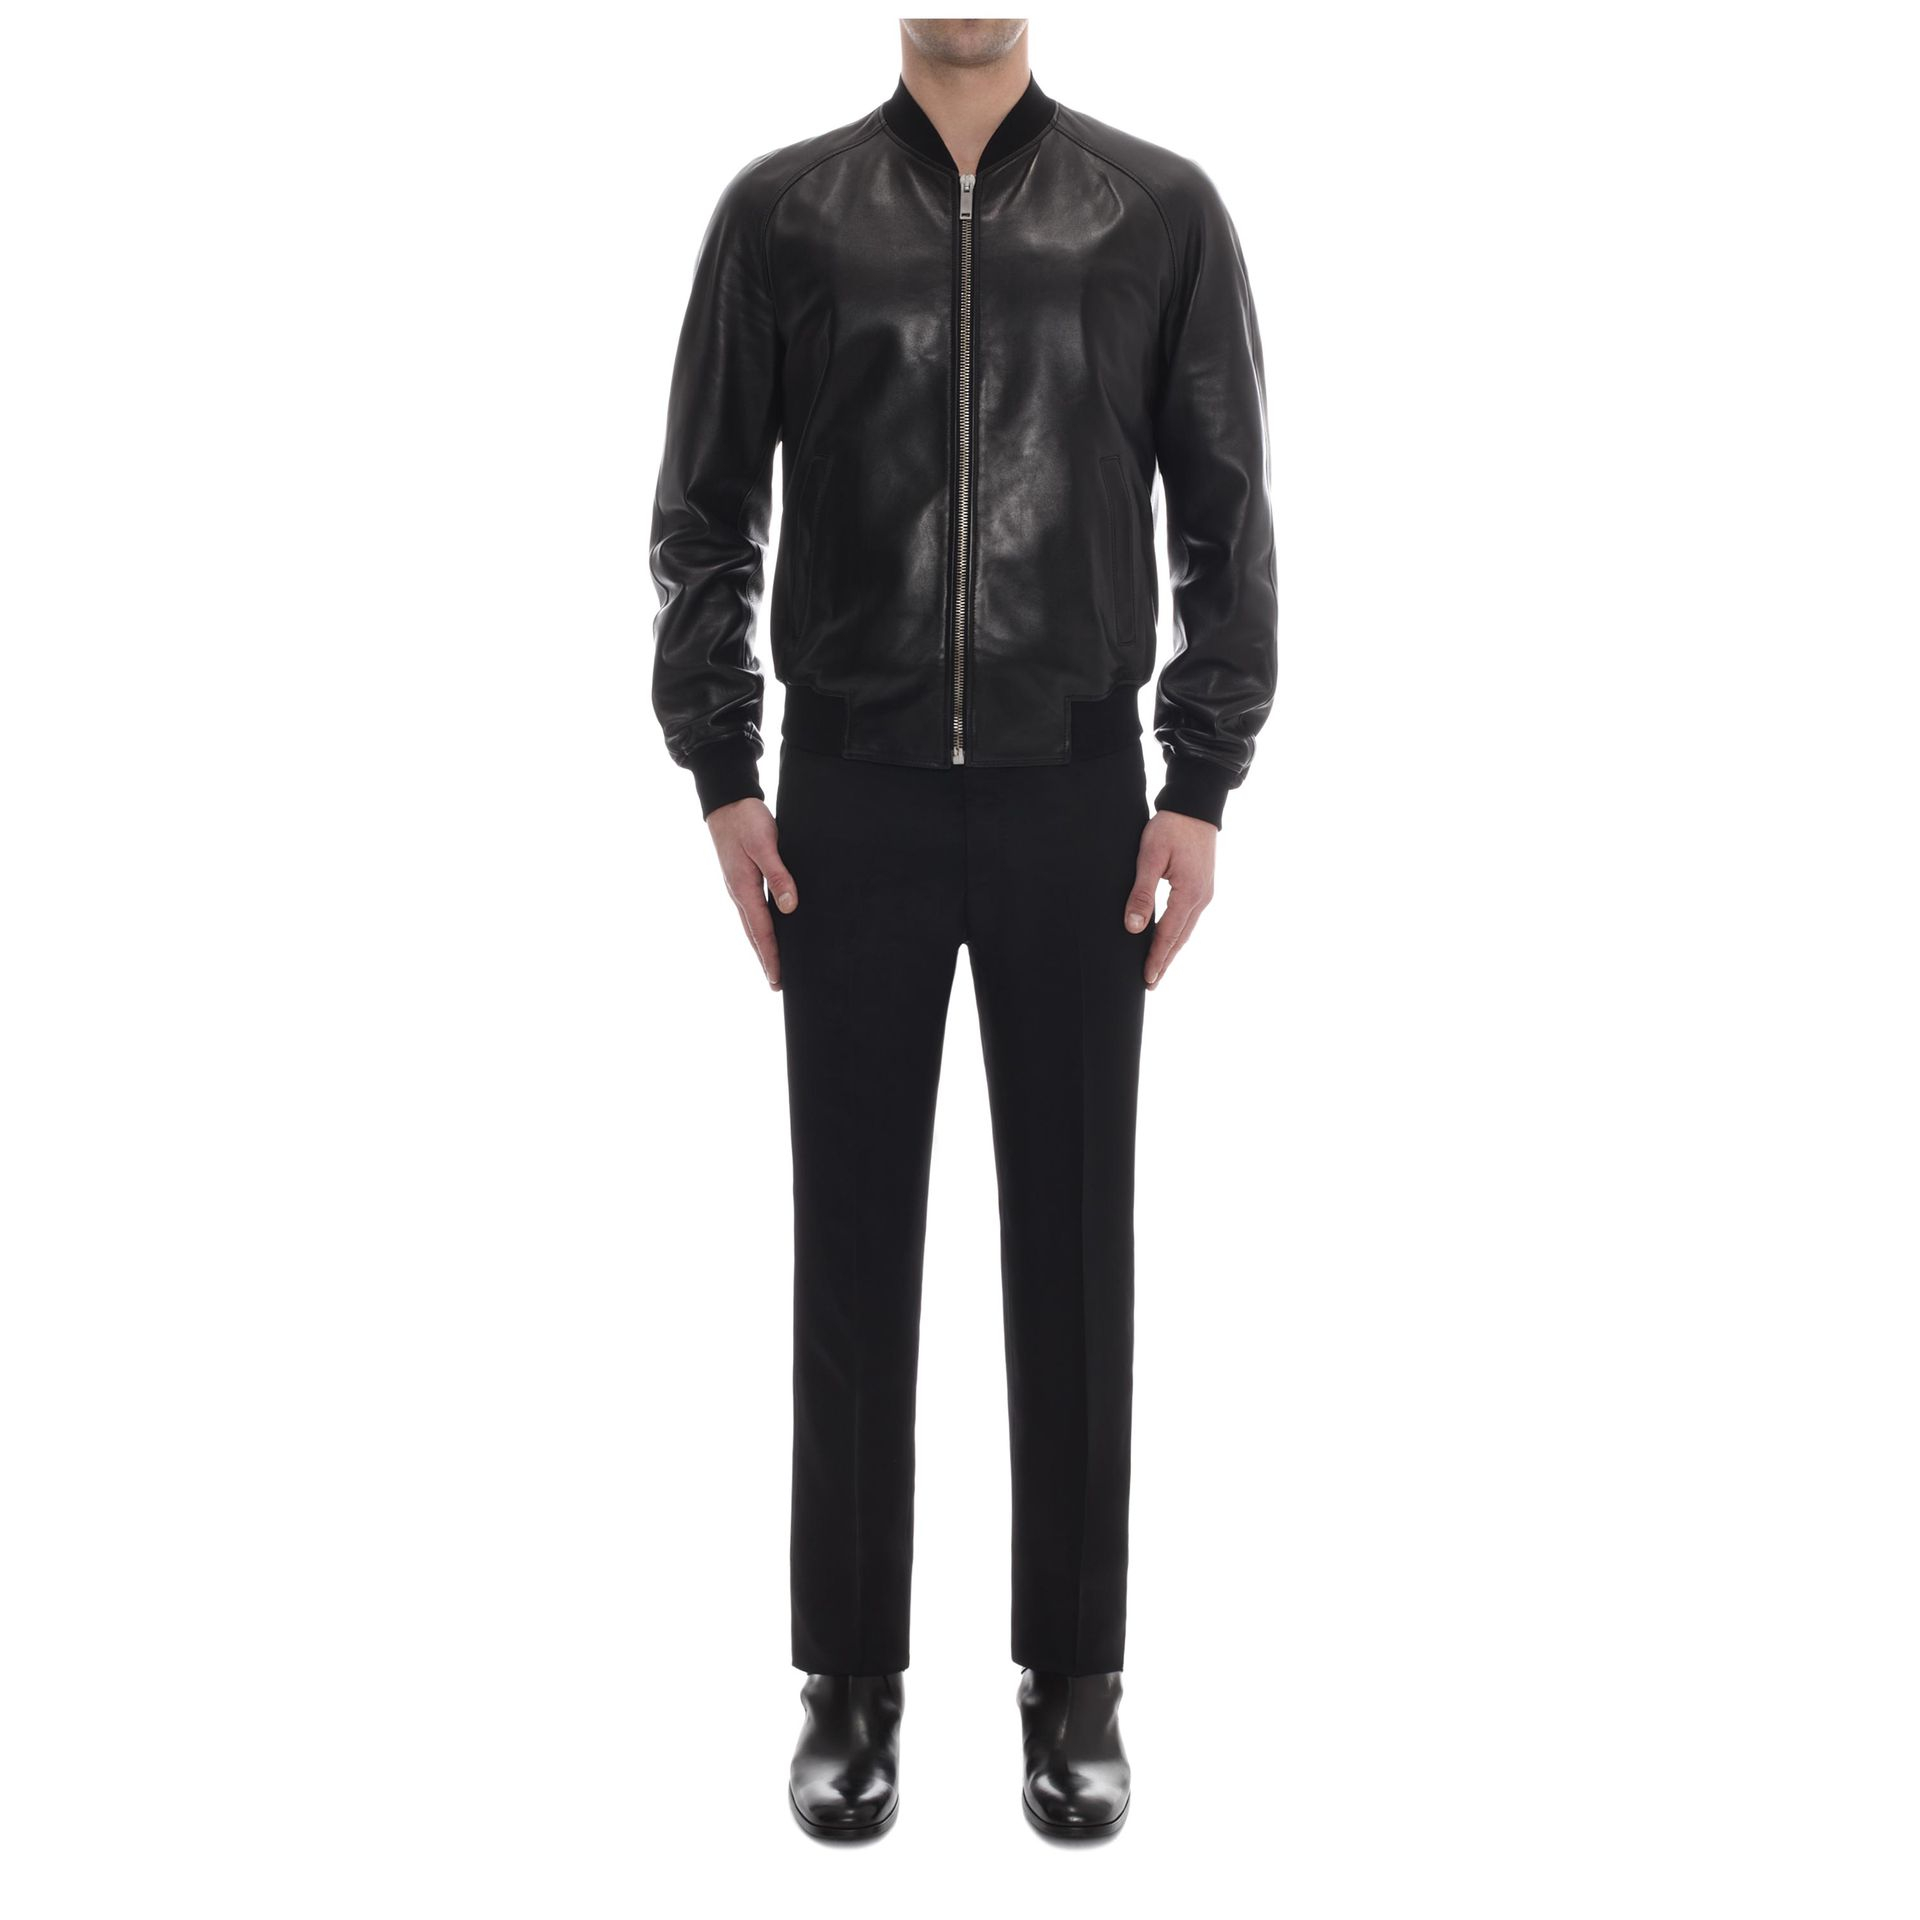 451facd15 Alexander McQueen Perforated Skull Leather Bomber Jacket in Black ...